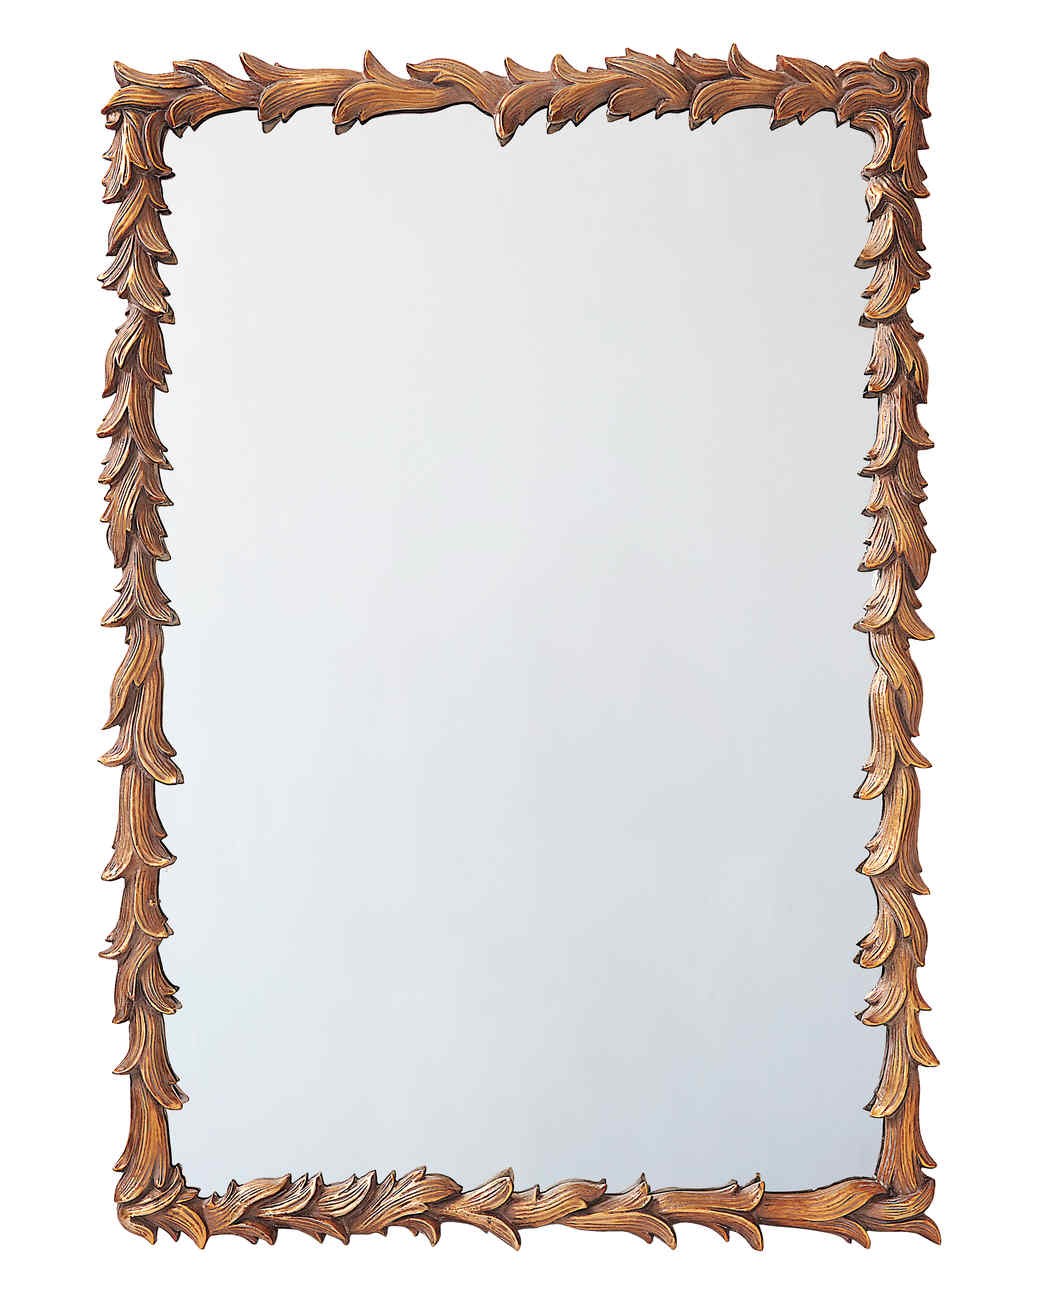 mantle-traditional-mirror-0060-d112376.jpg